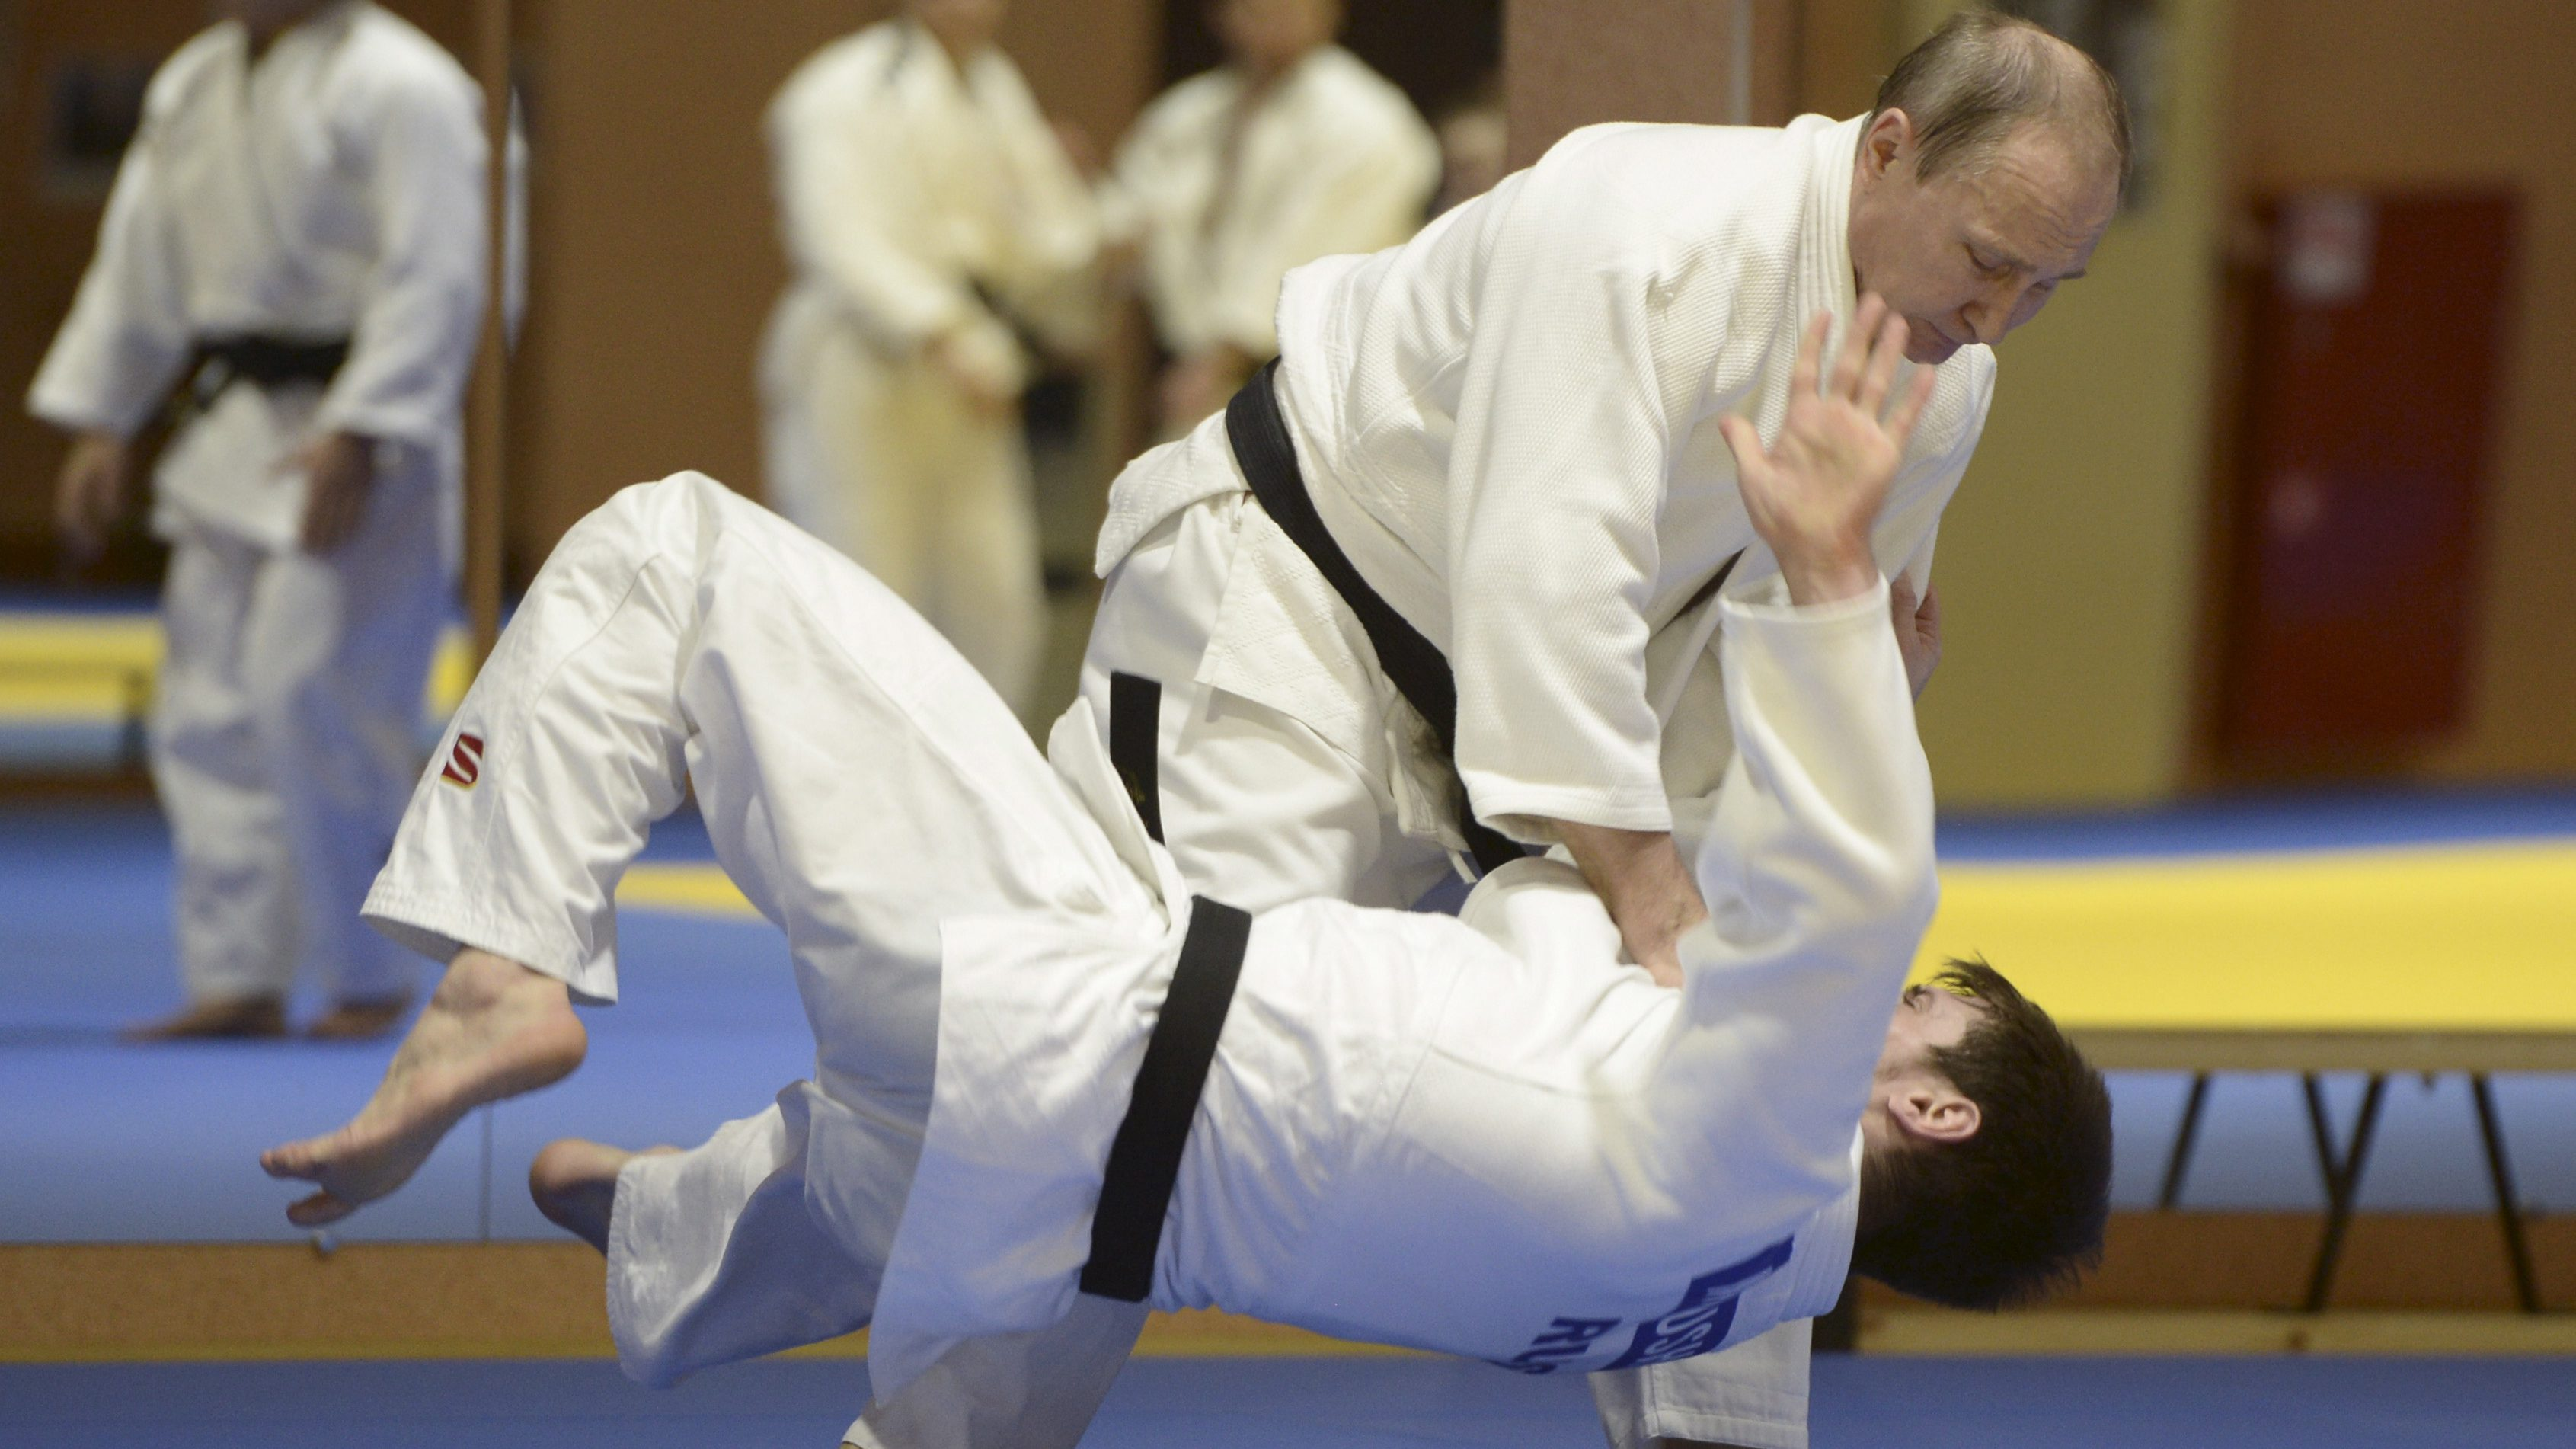 Russia's President Vladimir Putin practises with Musa Mogushkov of Russian national judo team during a training session in Sochi, Russia, January 8, 2016. REUTERS/Alexey Nikolsky/Sputnik/Kremlin ATTENTION EDITORS - THIS IMAGE HAS BEEN SUPPLIED BY A THIRD PARTY. IT IS DISTRIBUTED, EXACTLY AS RECEIVED BY REUTERS, AS A SERVICE TO CLIENTS.      TPX IMAGES OF THE DAY      - RTX21K4K